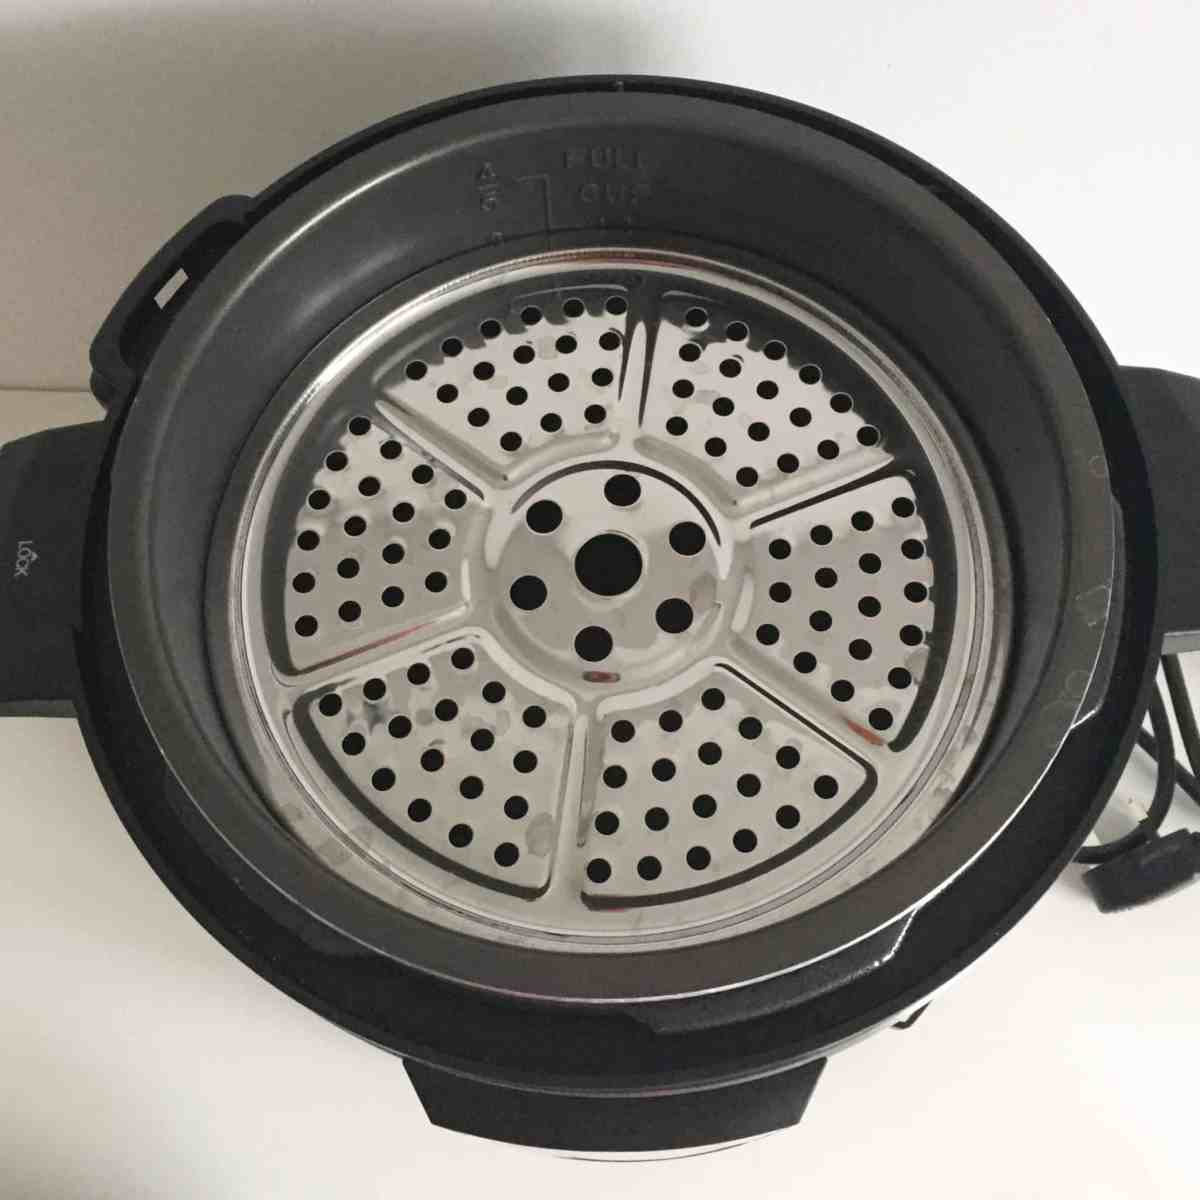 Bella Electric Pressure Cooker with steamer insert